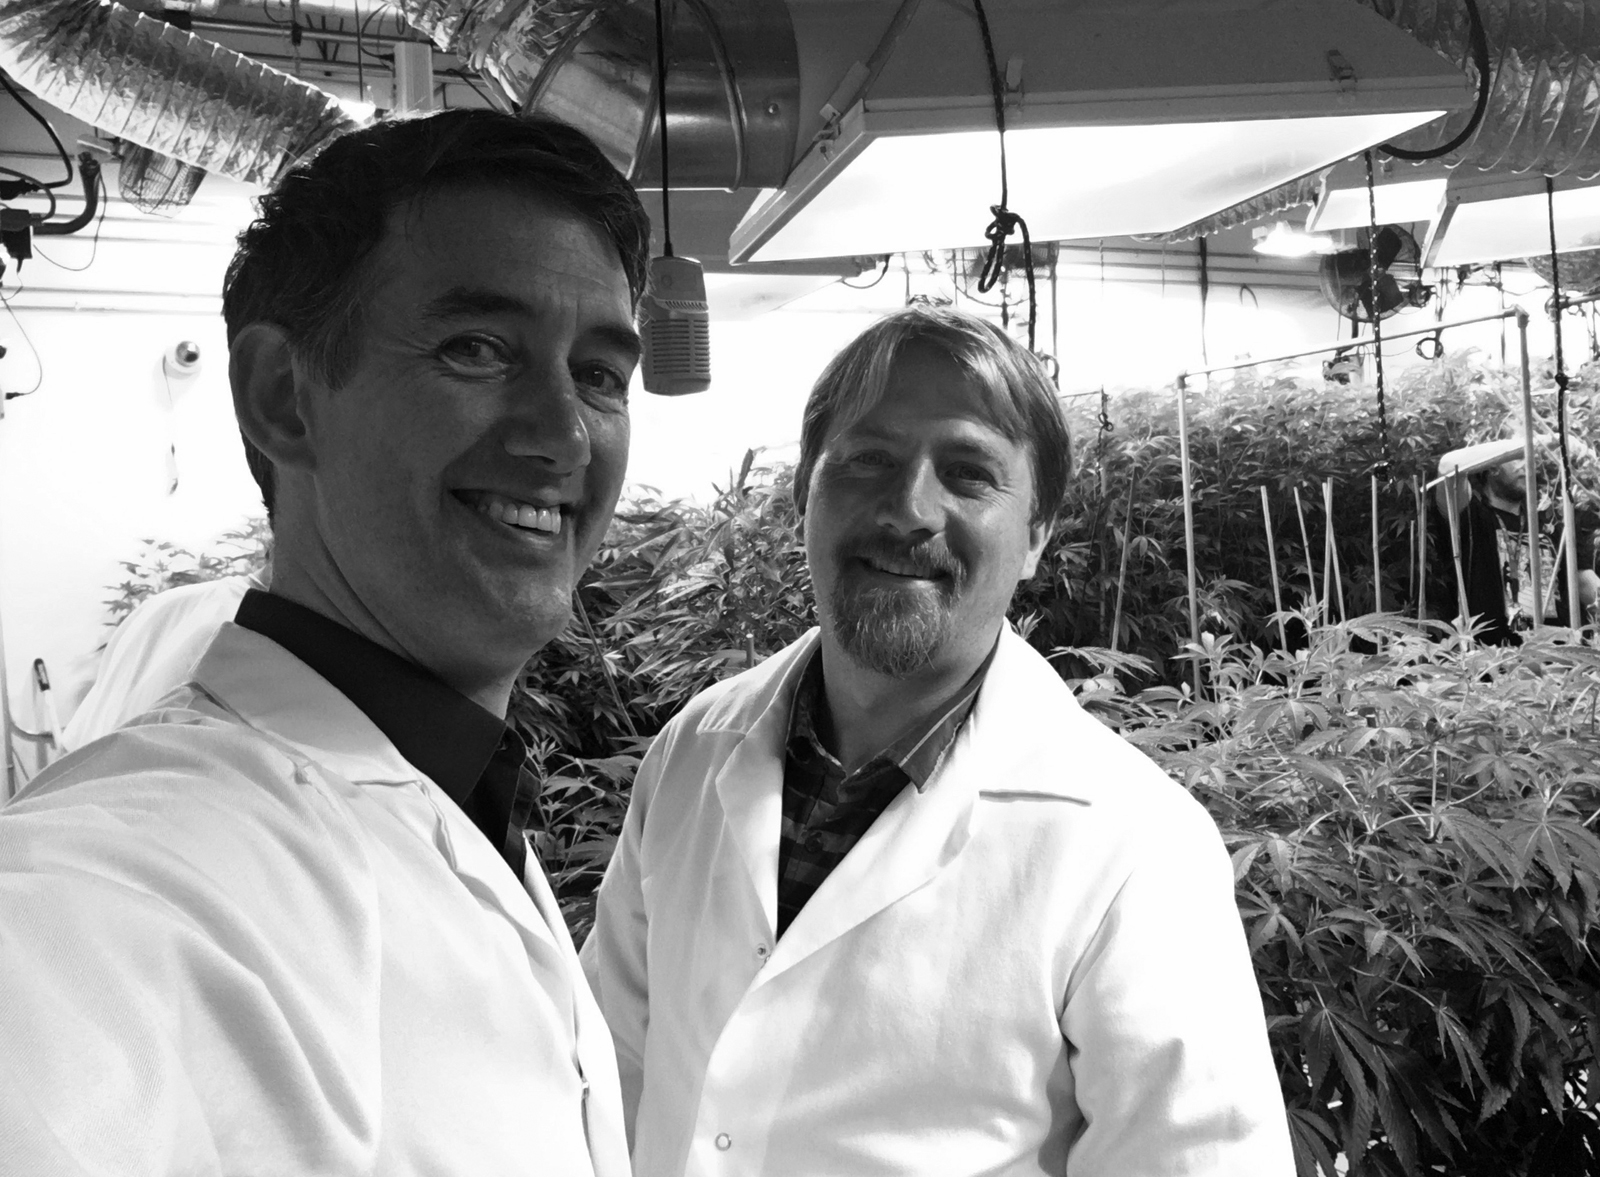 <h2>Cannabis Facility A/E Design Services</h2> Interactive Resources assists all types of clients in the cannabis industry: from small single grow room operations to large scale facilities; from the adaptive re-use of existing buildings to large scale new purpose built facilities; from urban projects to expansive suburban sites; from evaluating existing structures to the preparation of conditional use permits and building permits for construction.   We have direct experience designing and permitting facilities licensed to perform cultivation, manufacturing, distribution and volatile extraction activities, this is complemented by our network of experienced engineers/consultants combined with our inhouse A/E capabilities.